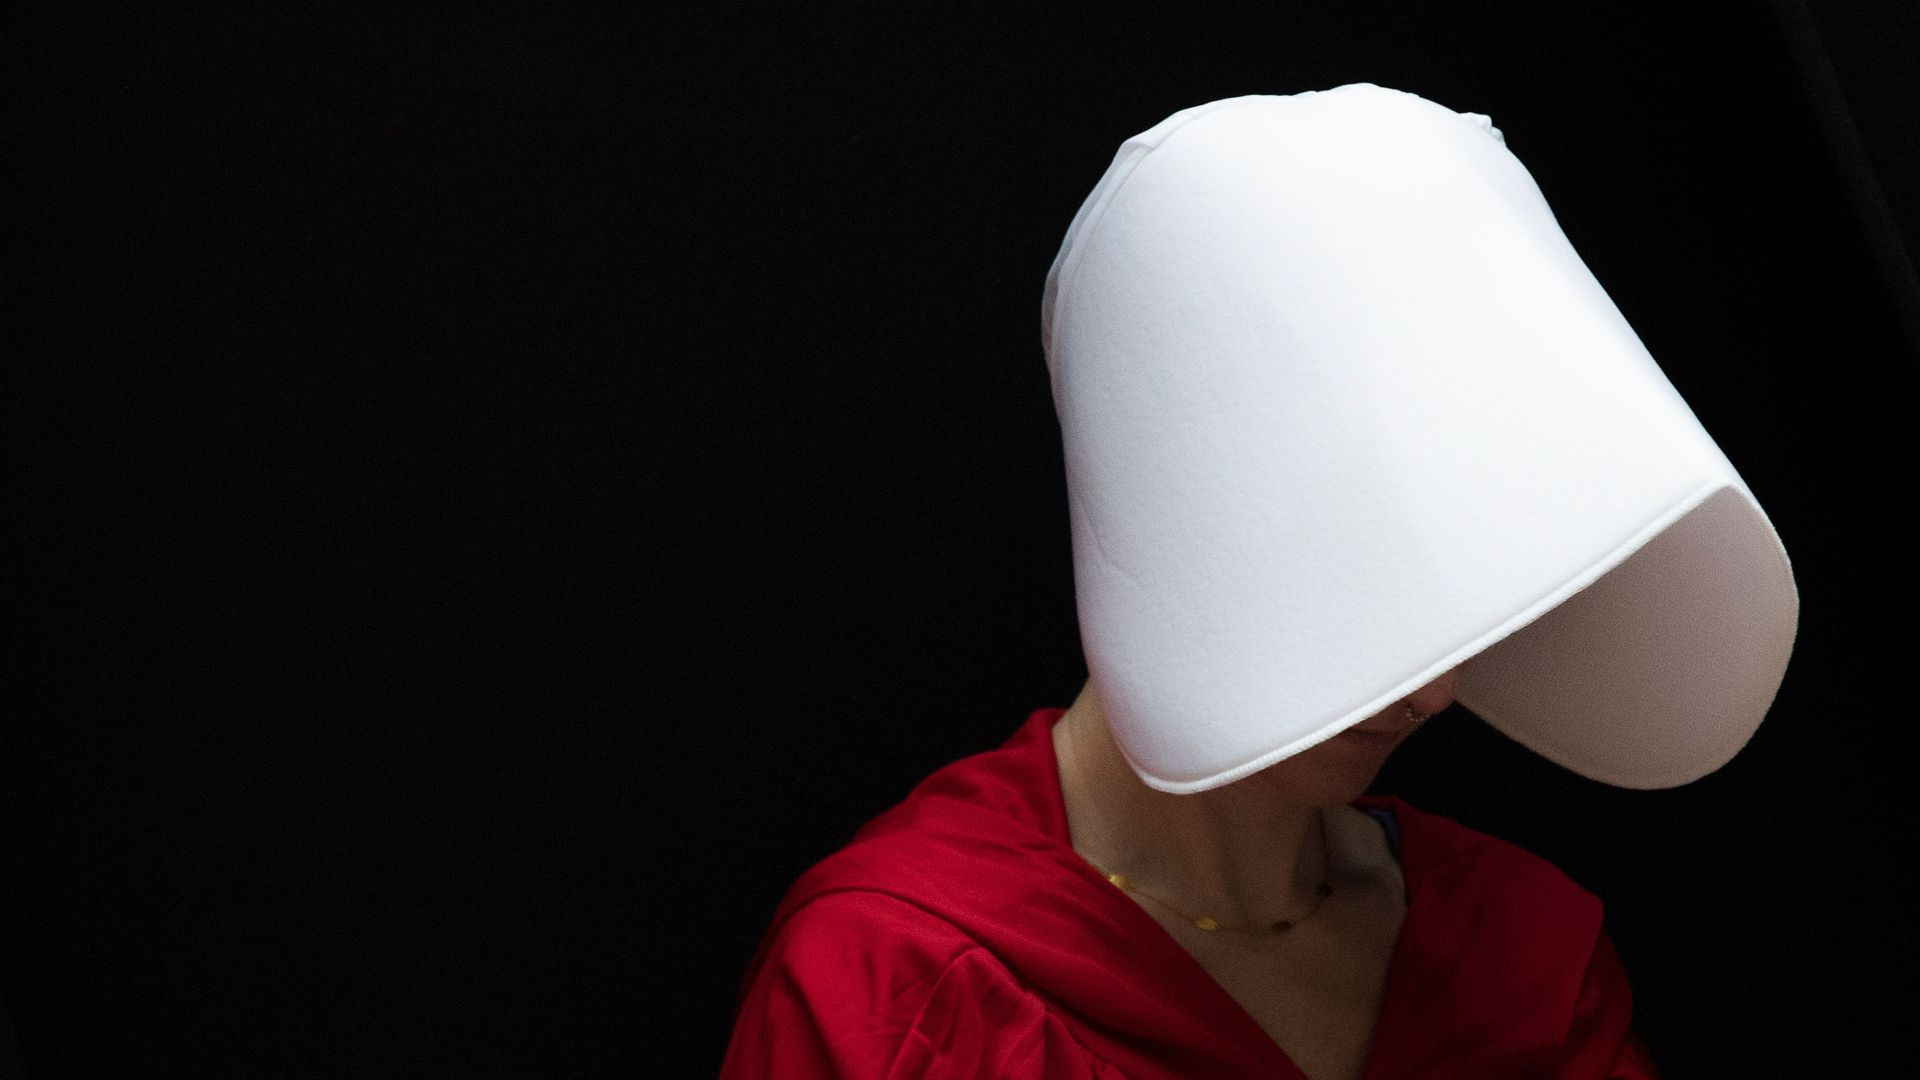 A woman dressed as a character from the Handmaid's Tale.